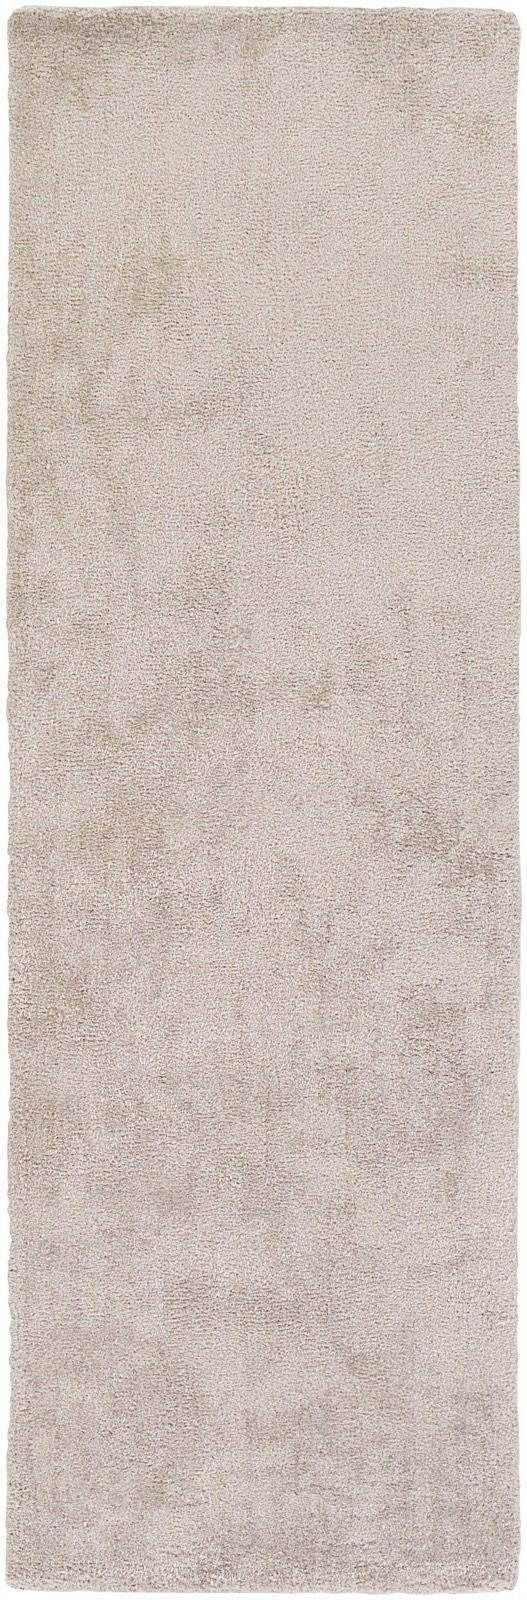 surya marvin shag area rug collection